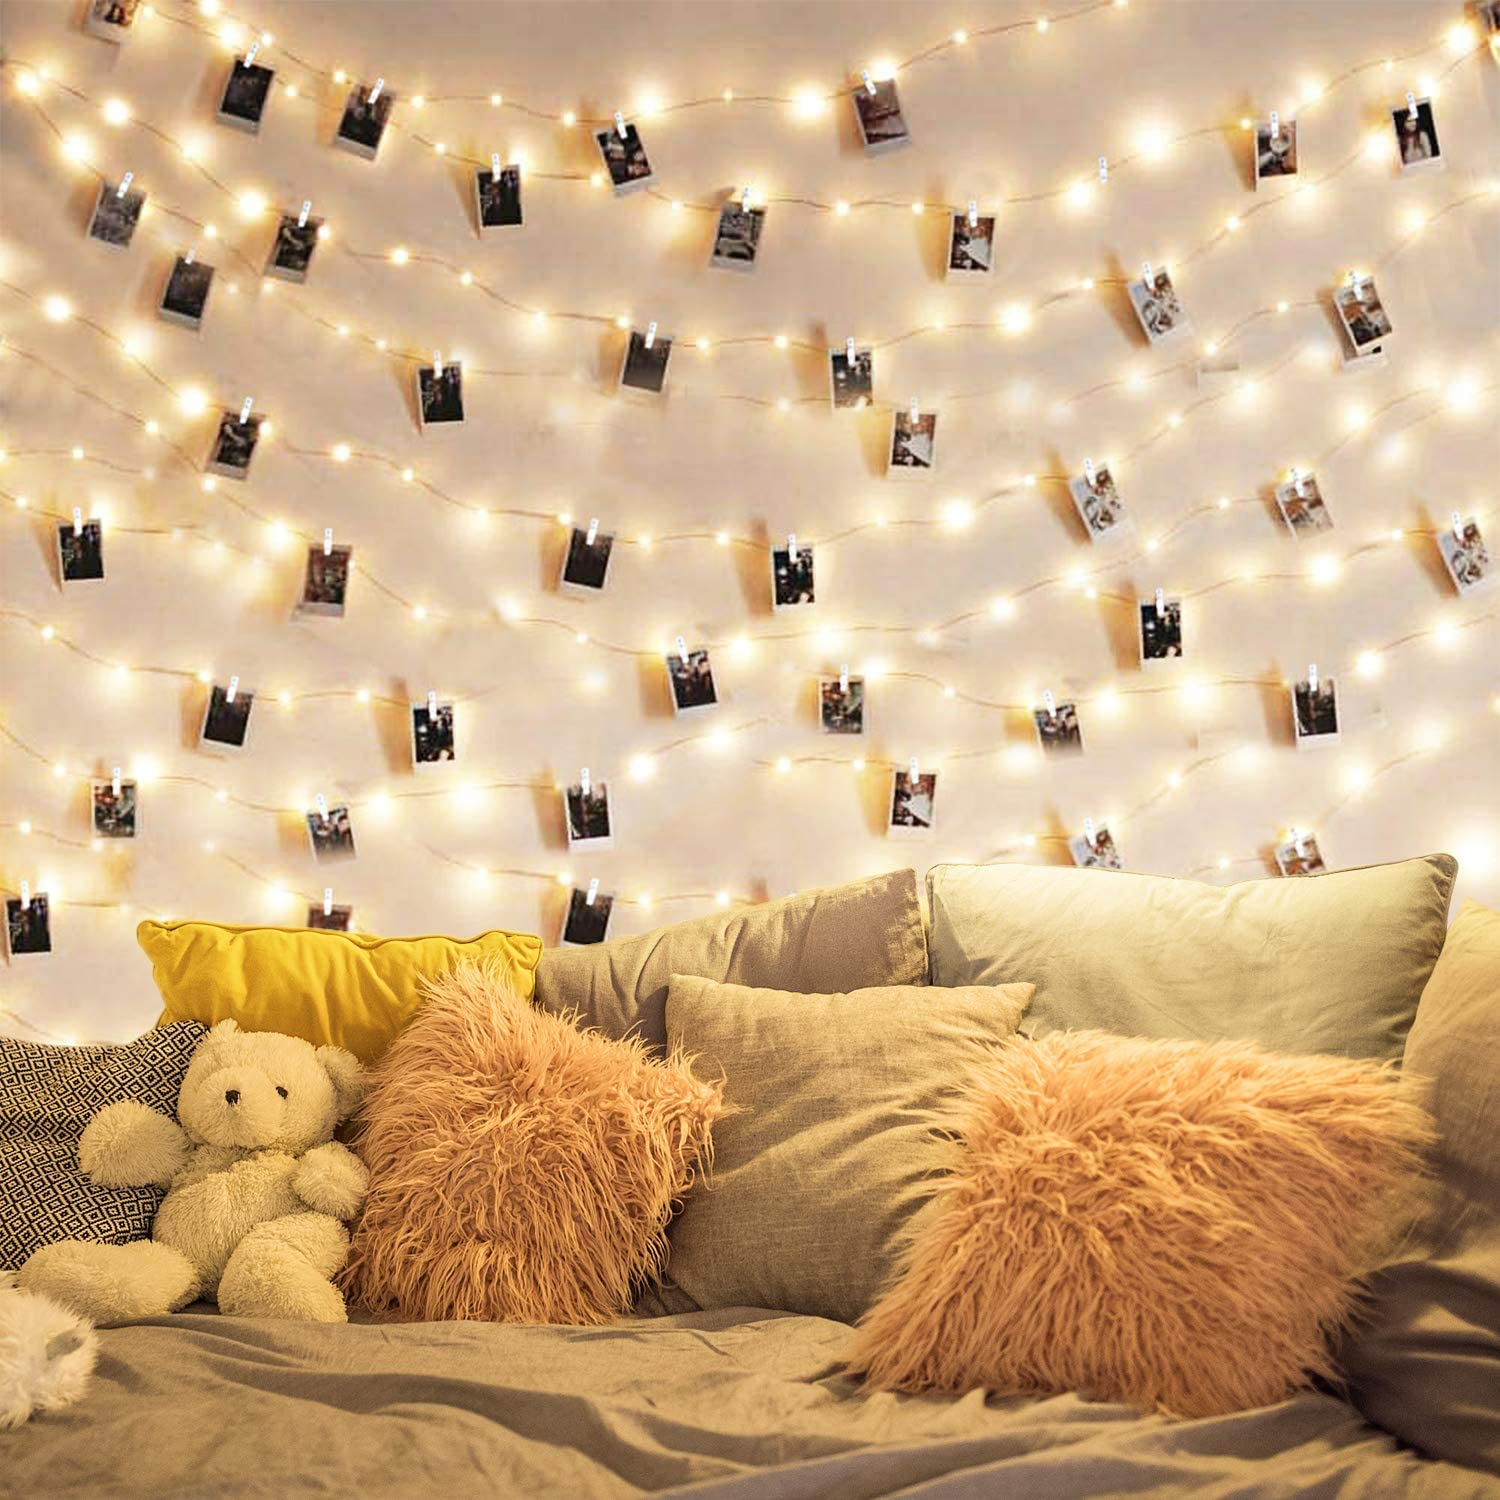 DOFASAYI LED Photo Clip String Lights 17Ft - 50 LED Fairy String Lights with 50 Clear Clips for Hanging Pictures,LED Photo Clip String Light for - Perfect Dorm Bedroom Wall Decor Wedding Decorations